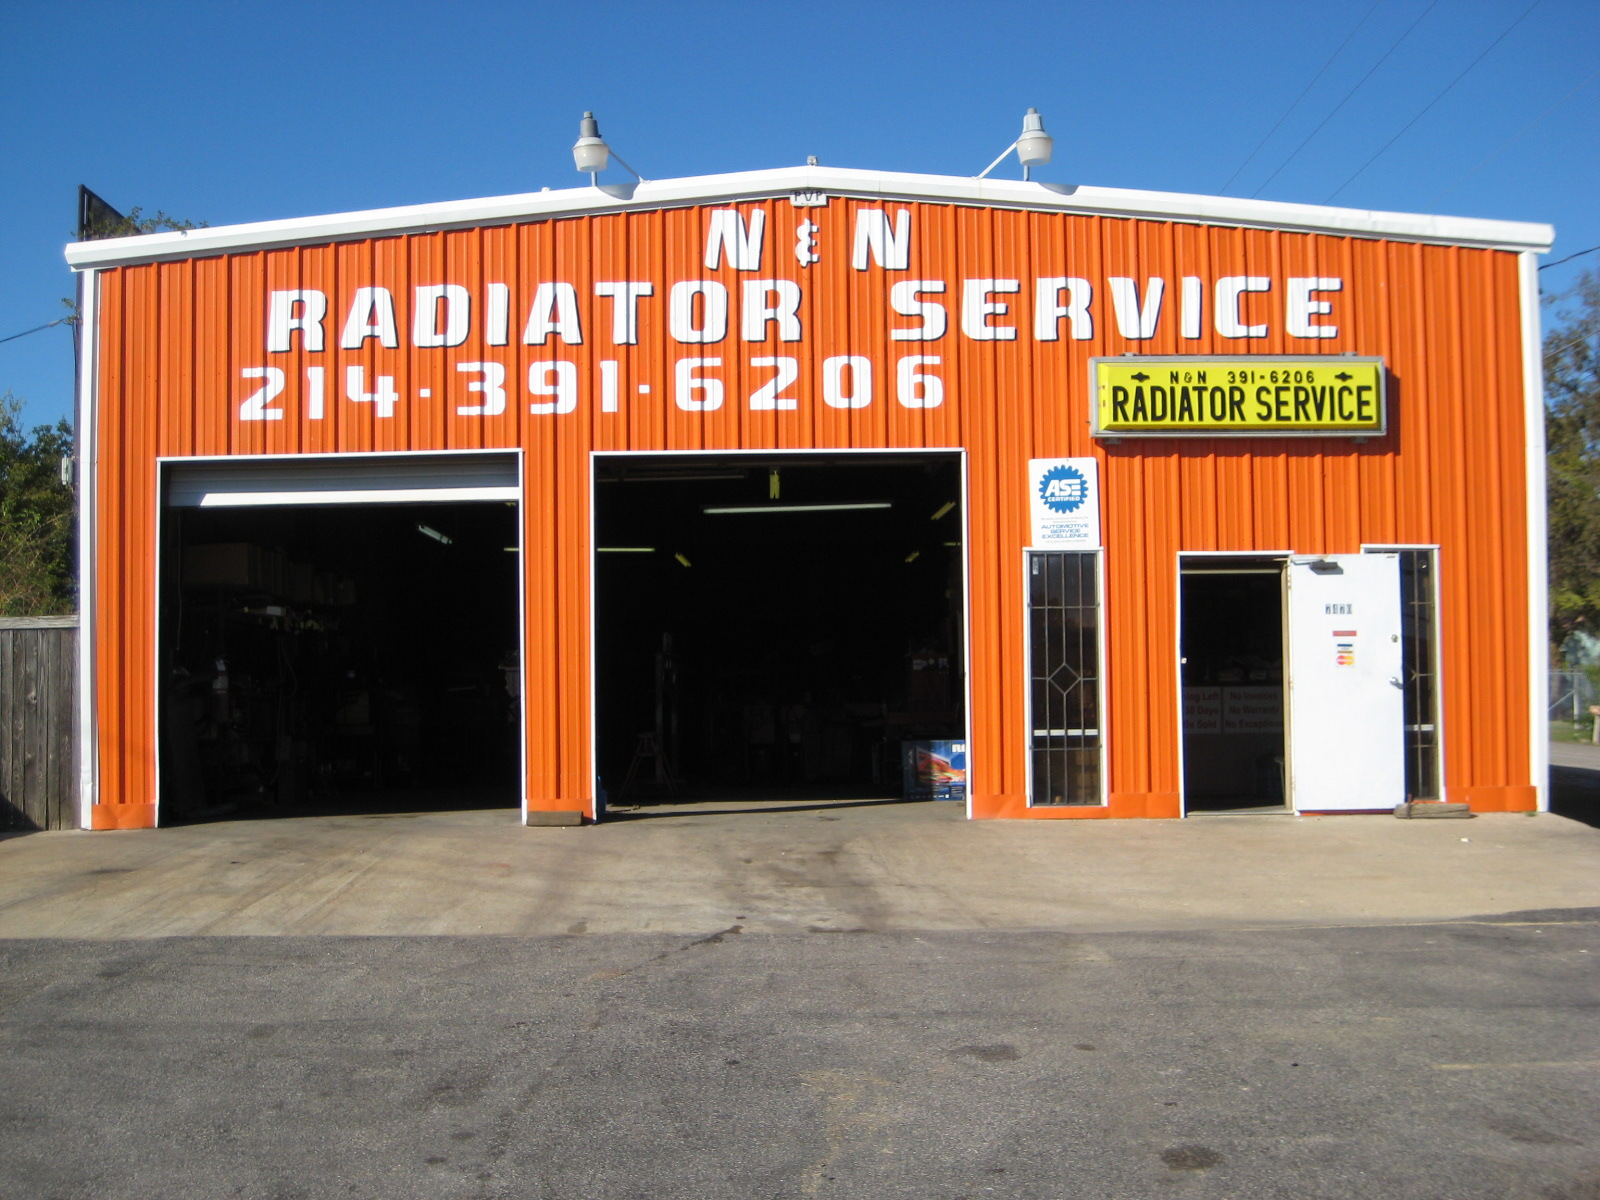 N N Radiator Service Dallas Texas Tx